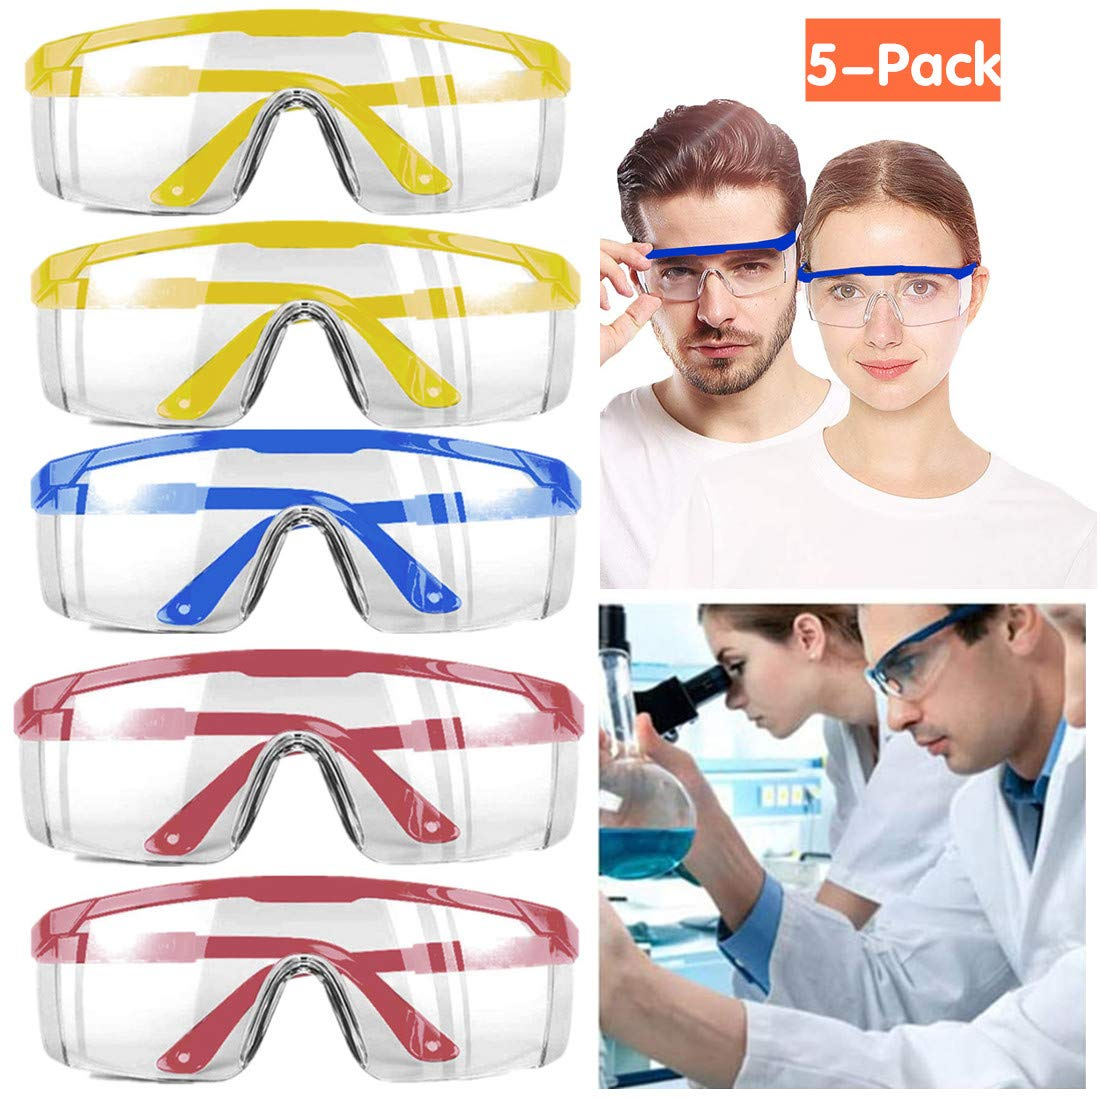 5-Pack Anti-Fog Protective Safety Goggles Clear Lens Wide-Vision Chemical Splash Eye Protection Soft Lightweight Eyewear